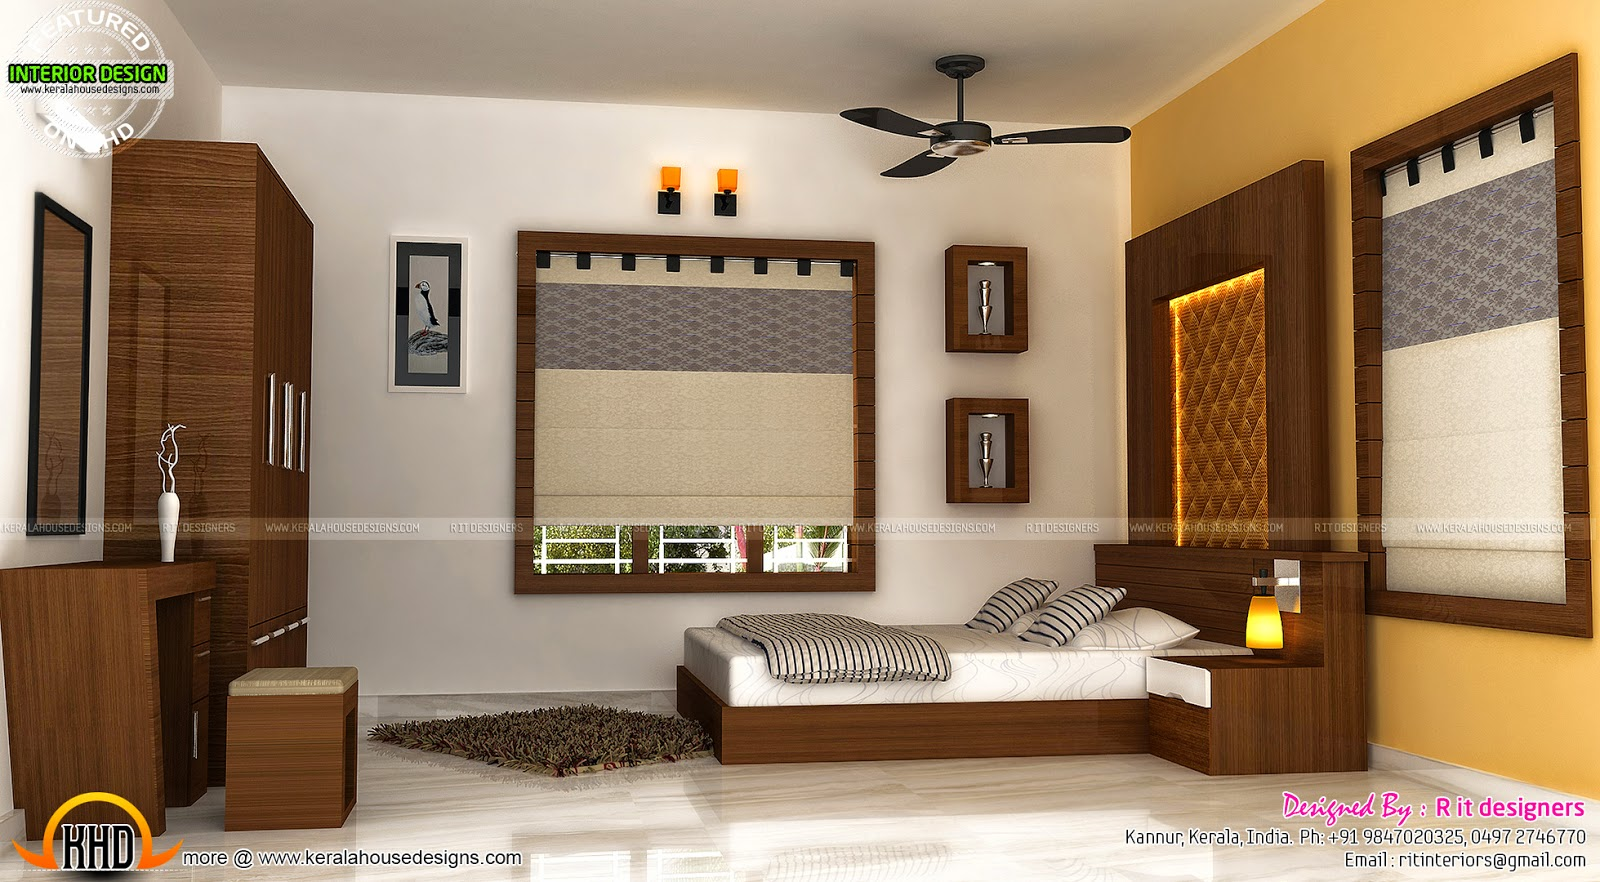 Staircase bedroom dining interiors kerala home design for Interior decoration of house photos